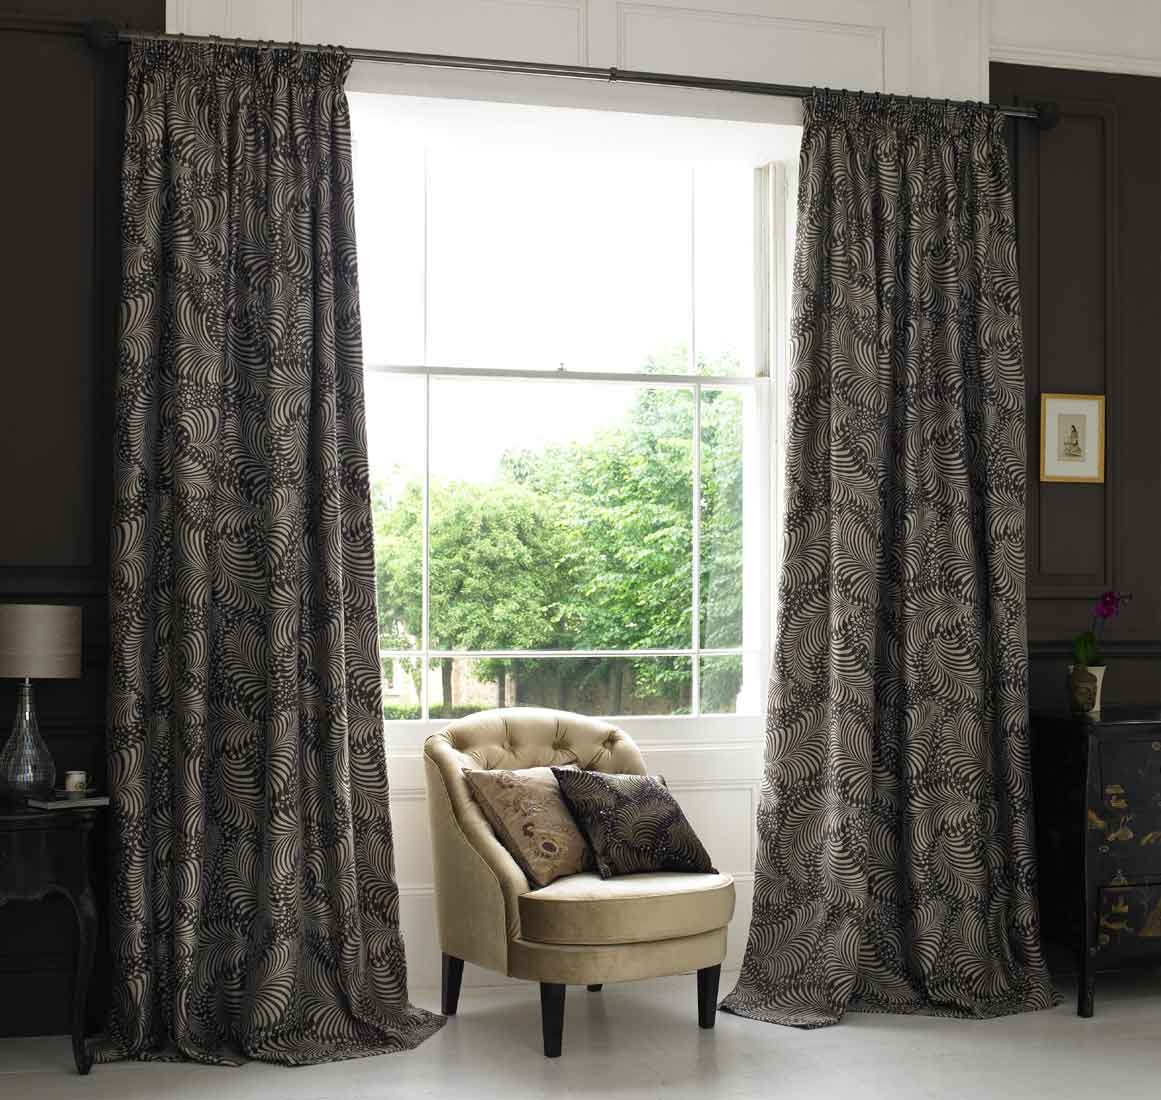 Remarkable Curtains Living Room Ideas Window Coverings Blackout Throughout Black And Brown Curtains (Image 15 of 15)